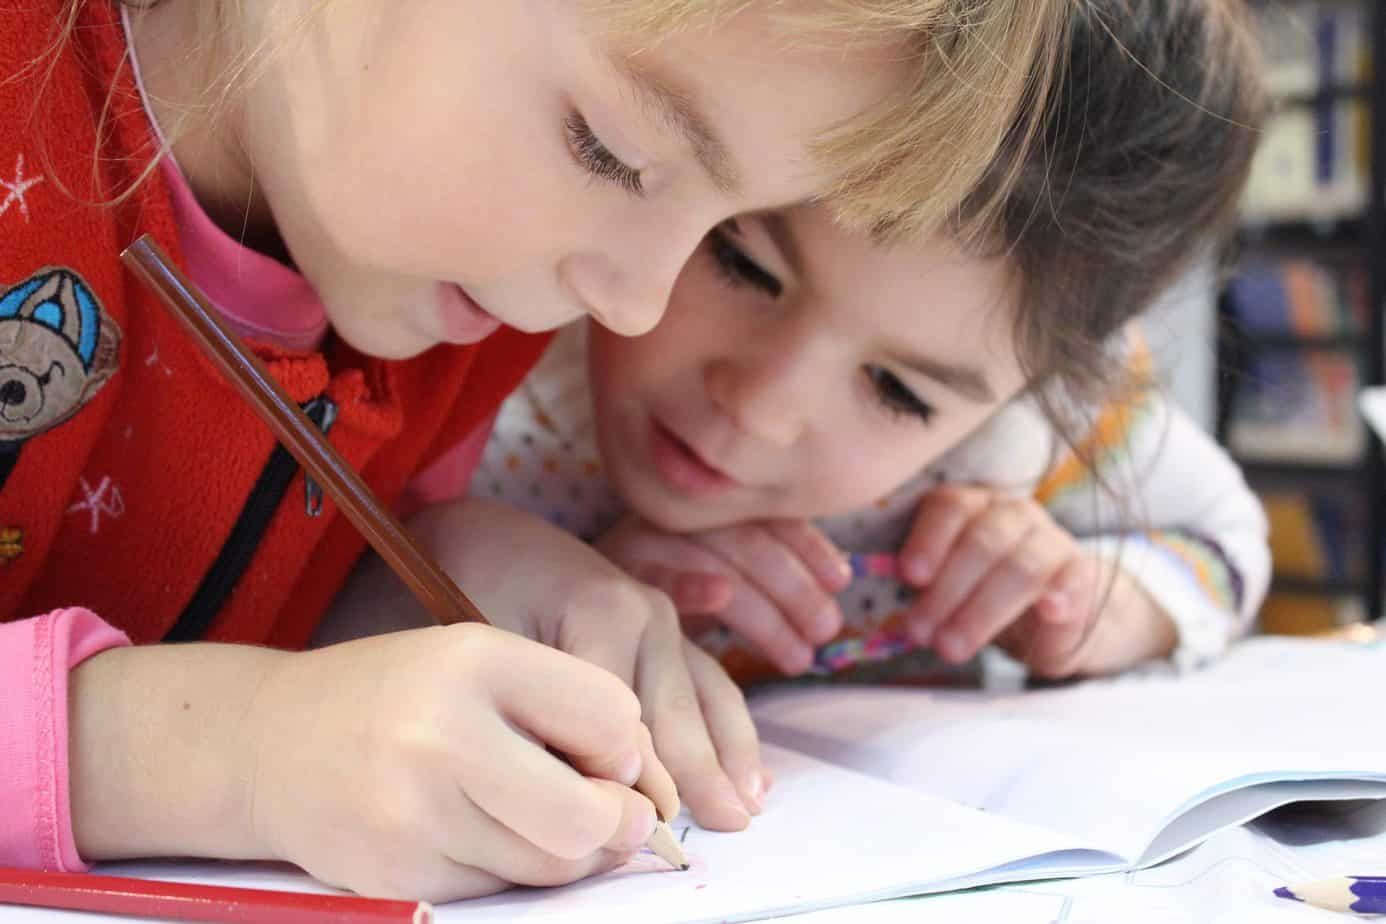 Teaching children how to write fun letters - tips from the International Elf Service